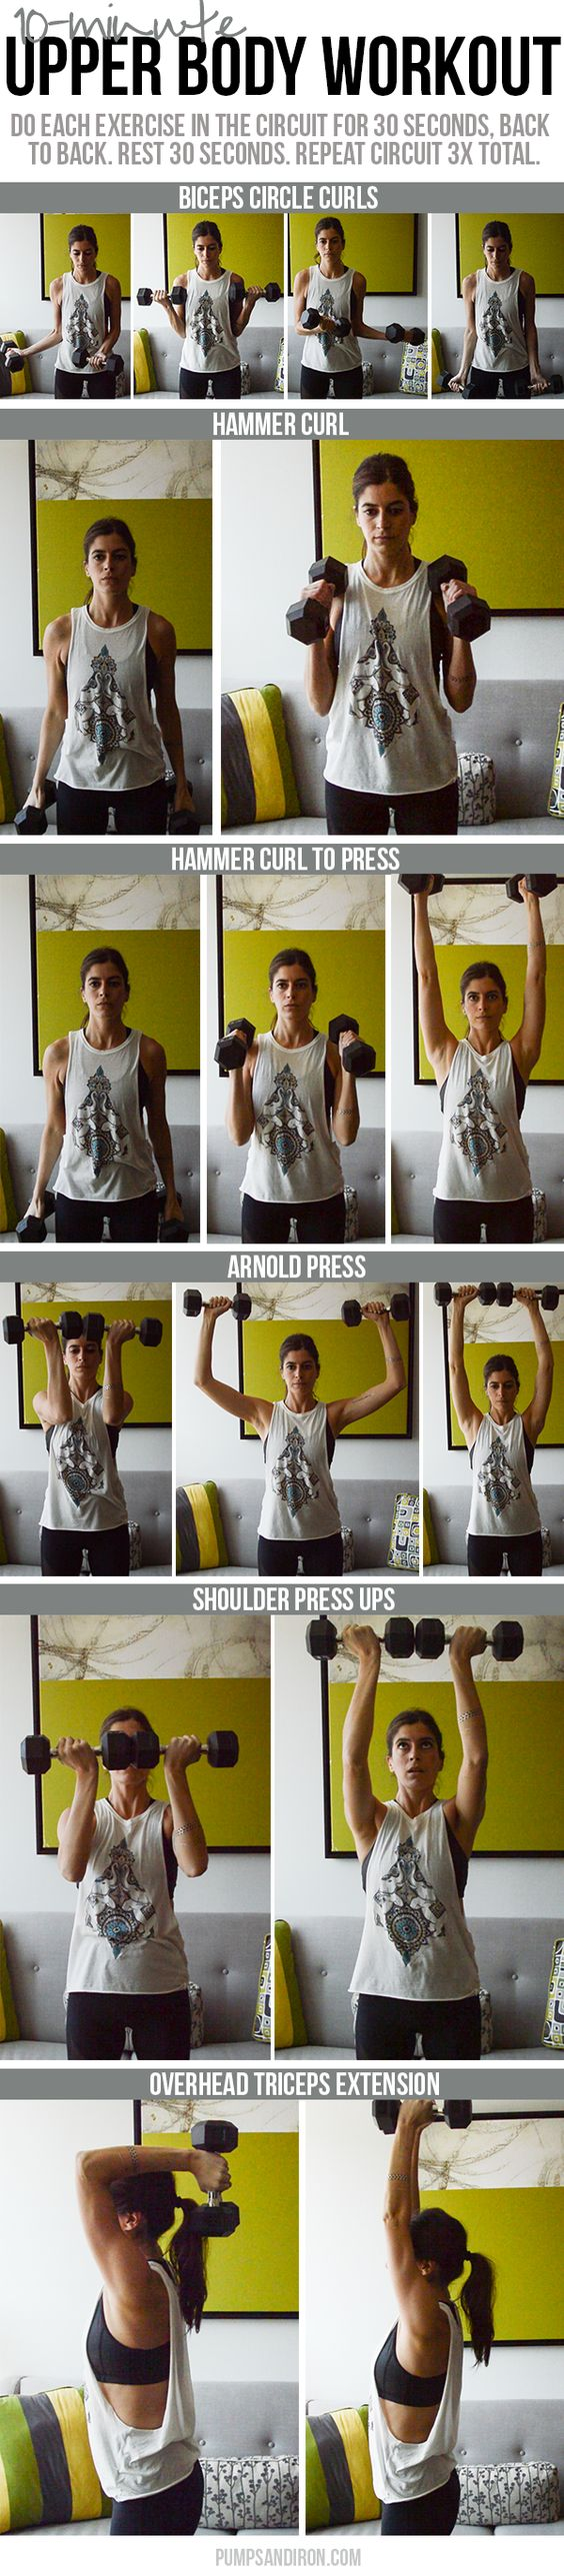 10-minute upper body workout using dumbbells